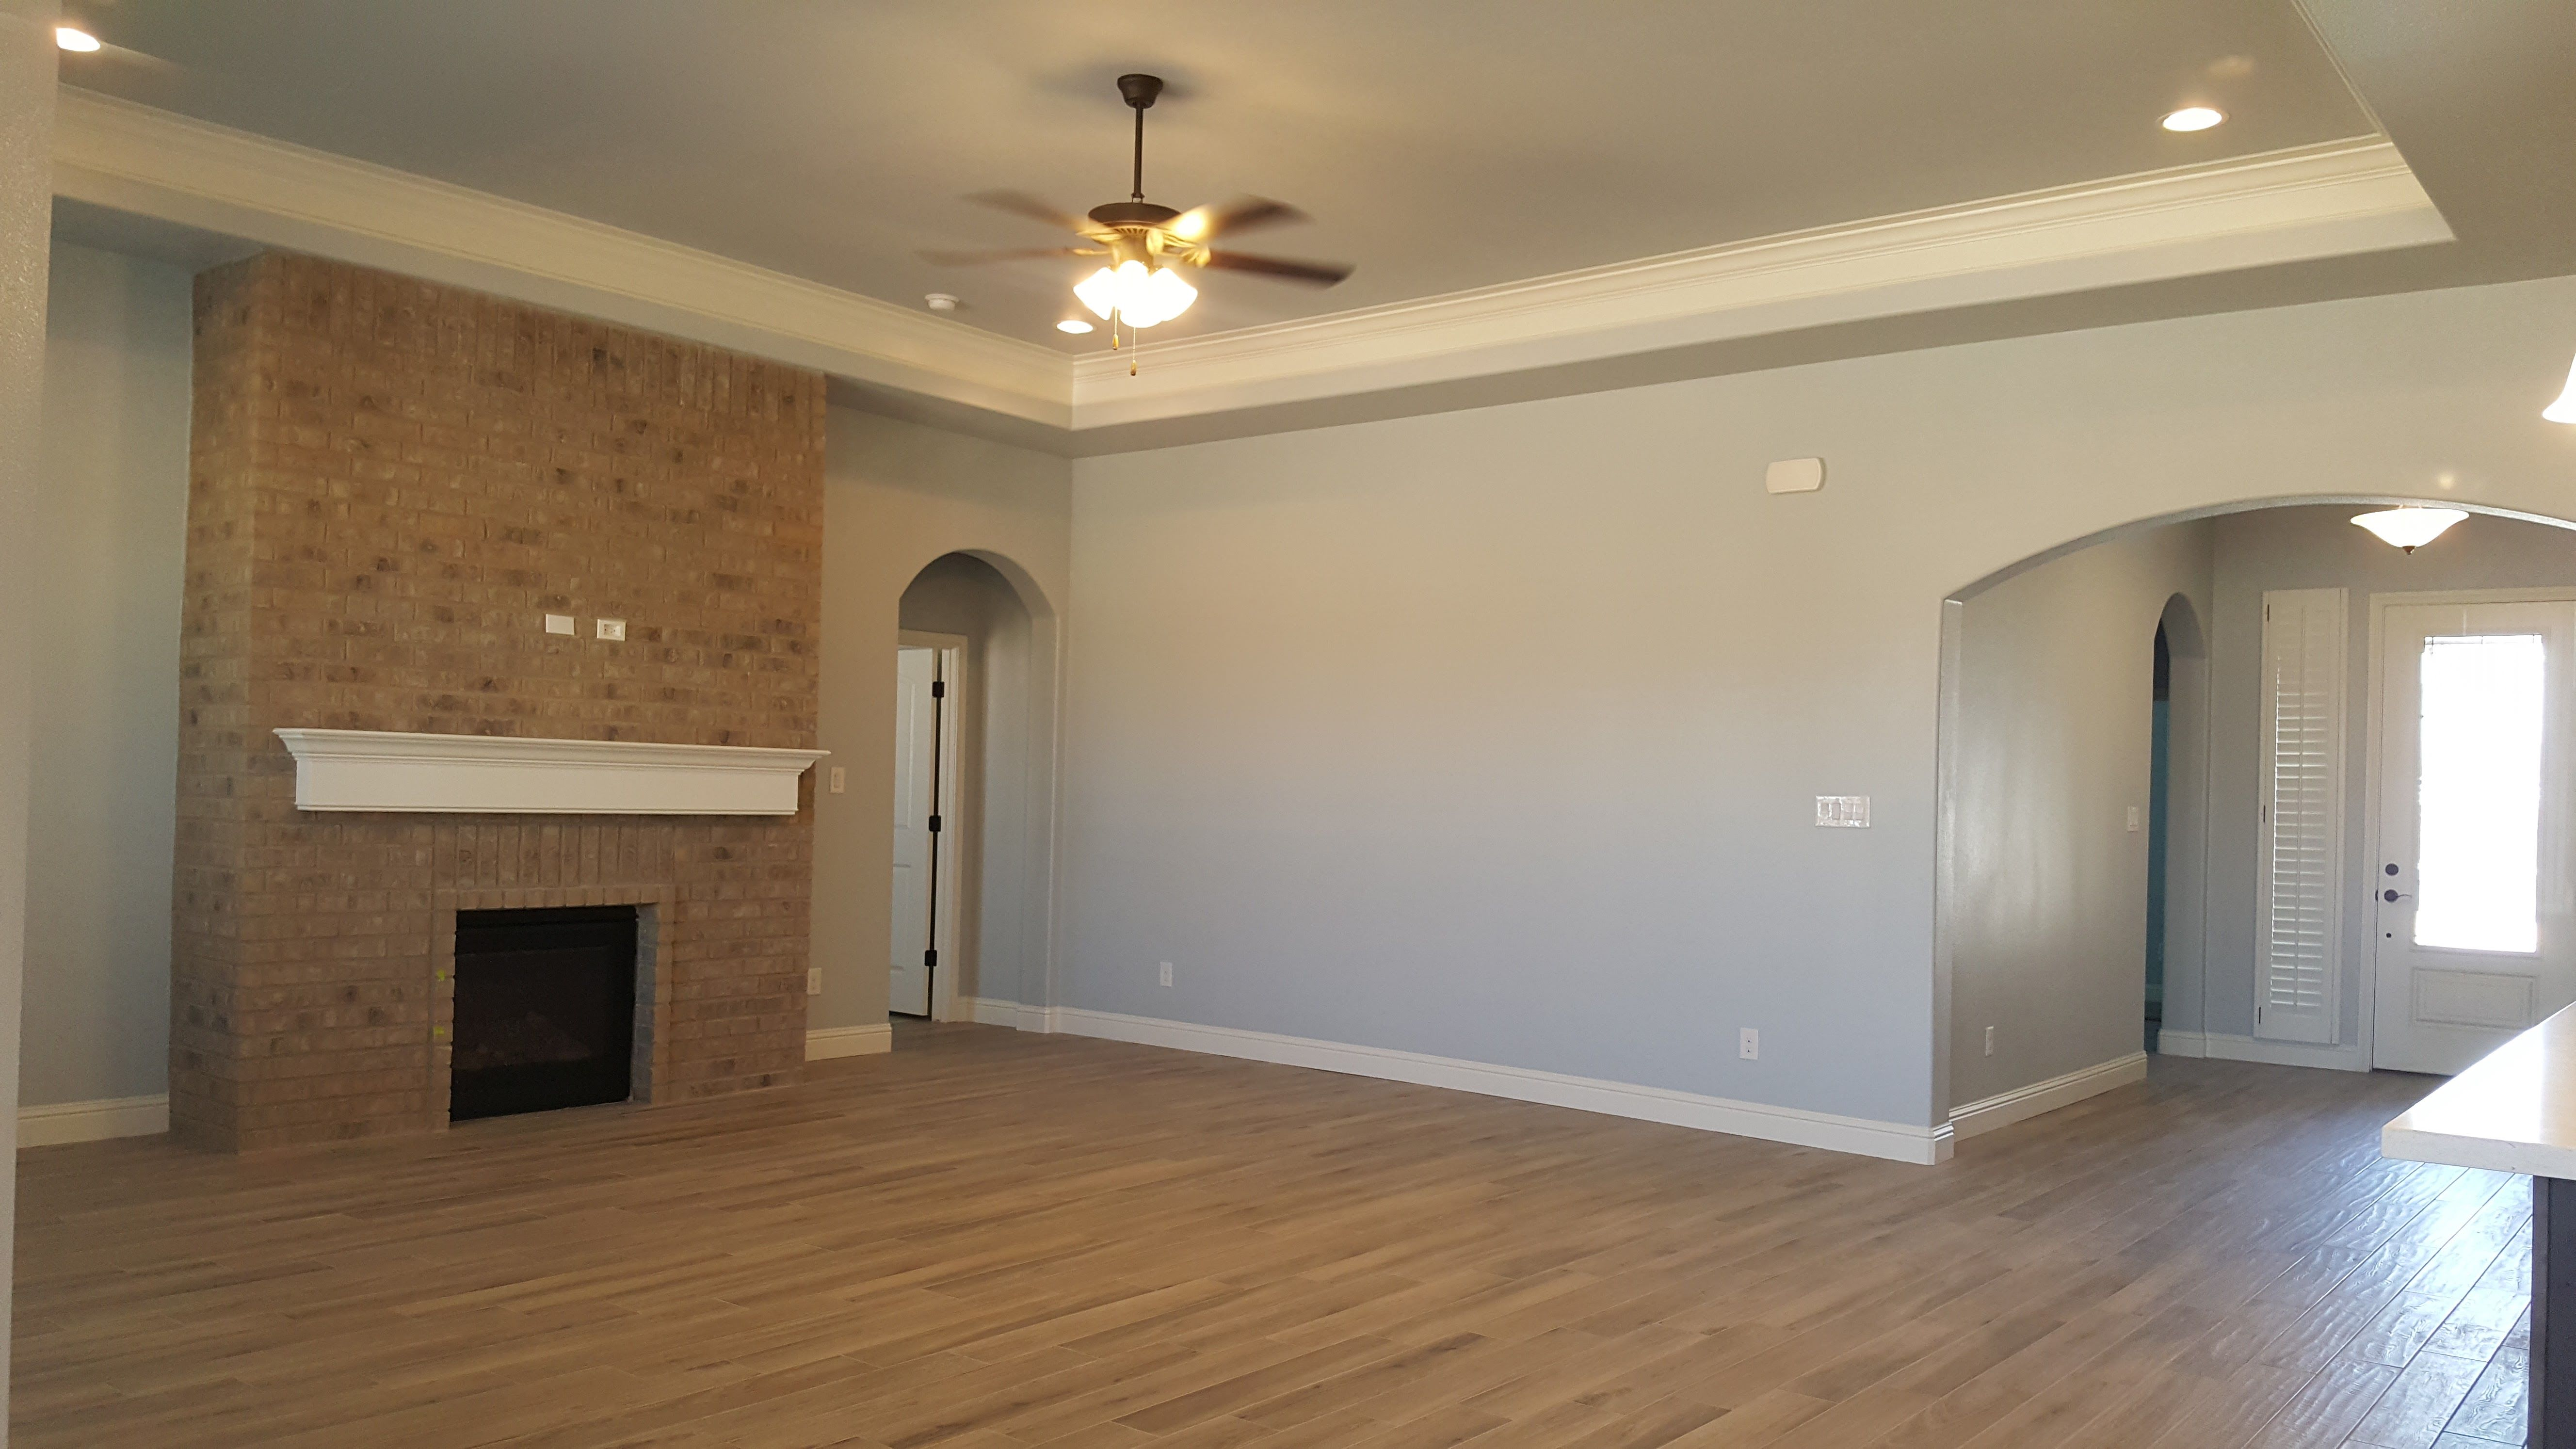 Full Brick Fireplace, No Hearth, Firebox Level With Floor